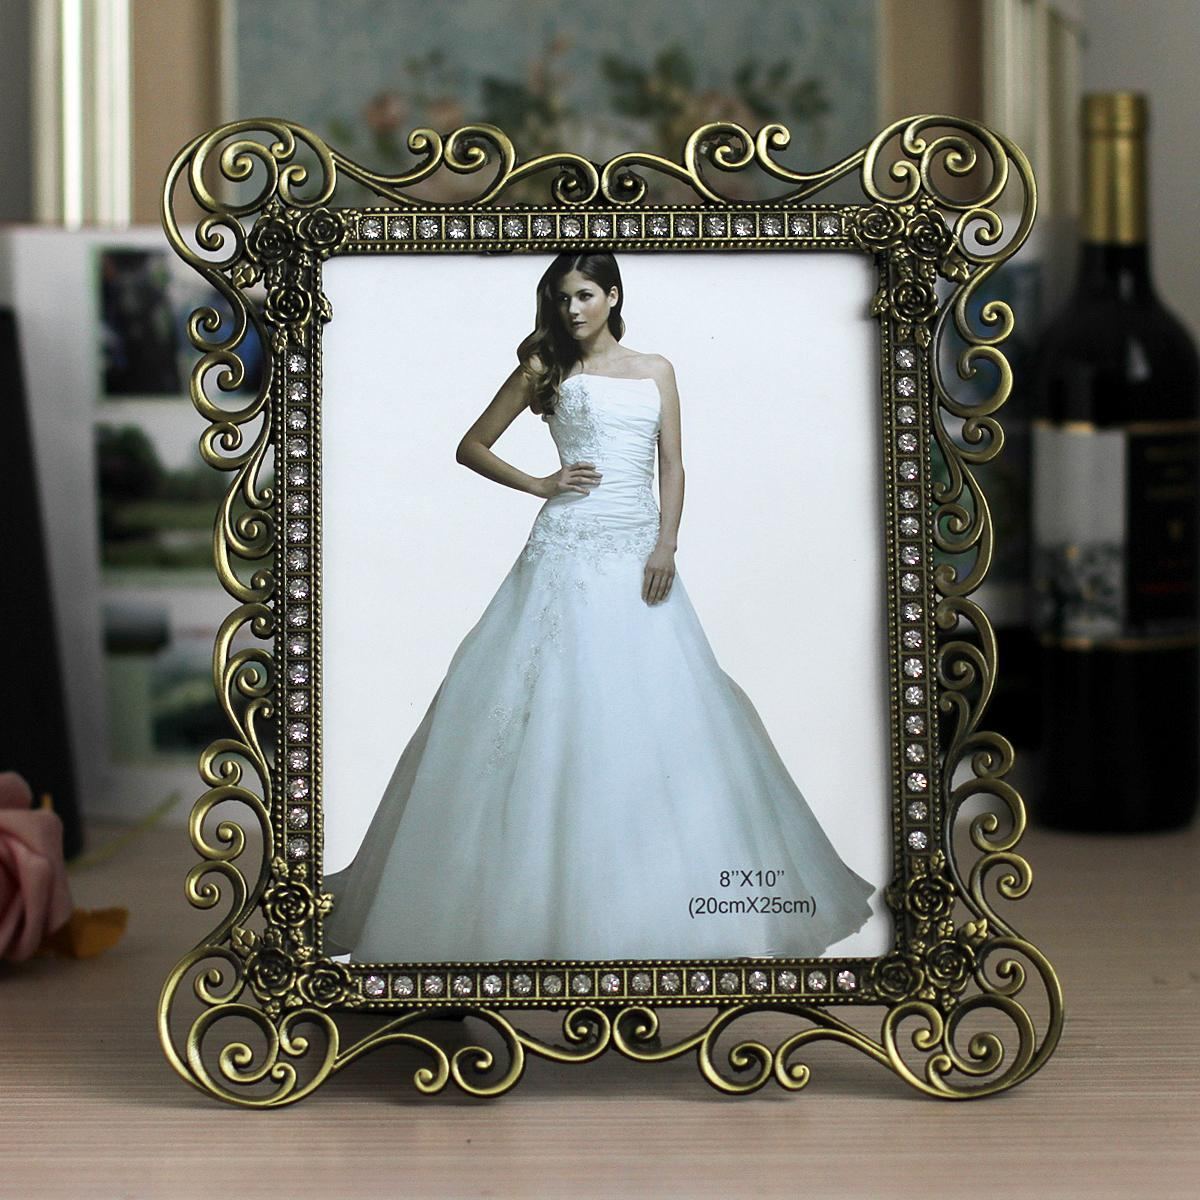 7/-Inch 10-Inch Metal Photo Frame White HYUNDAI Copper Vintage Wedding Photo Frames Gift Decoration Accessories X63